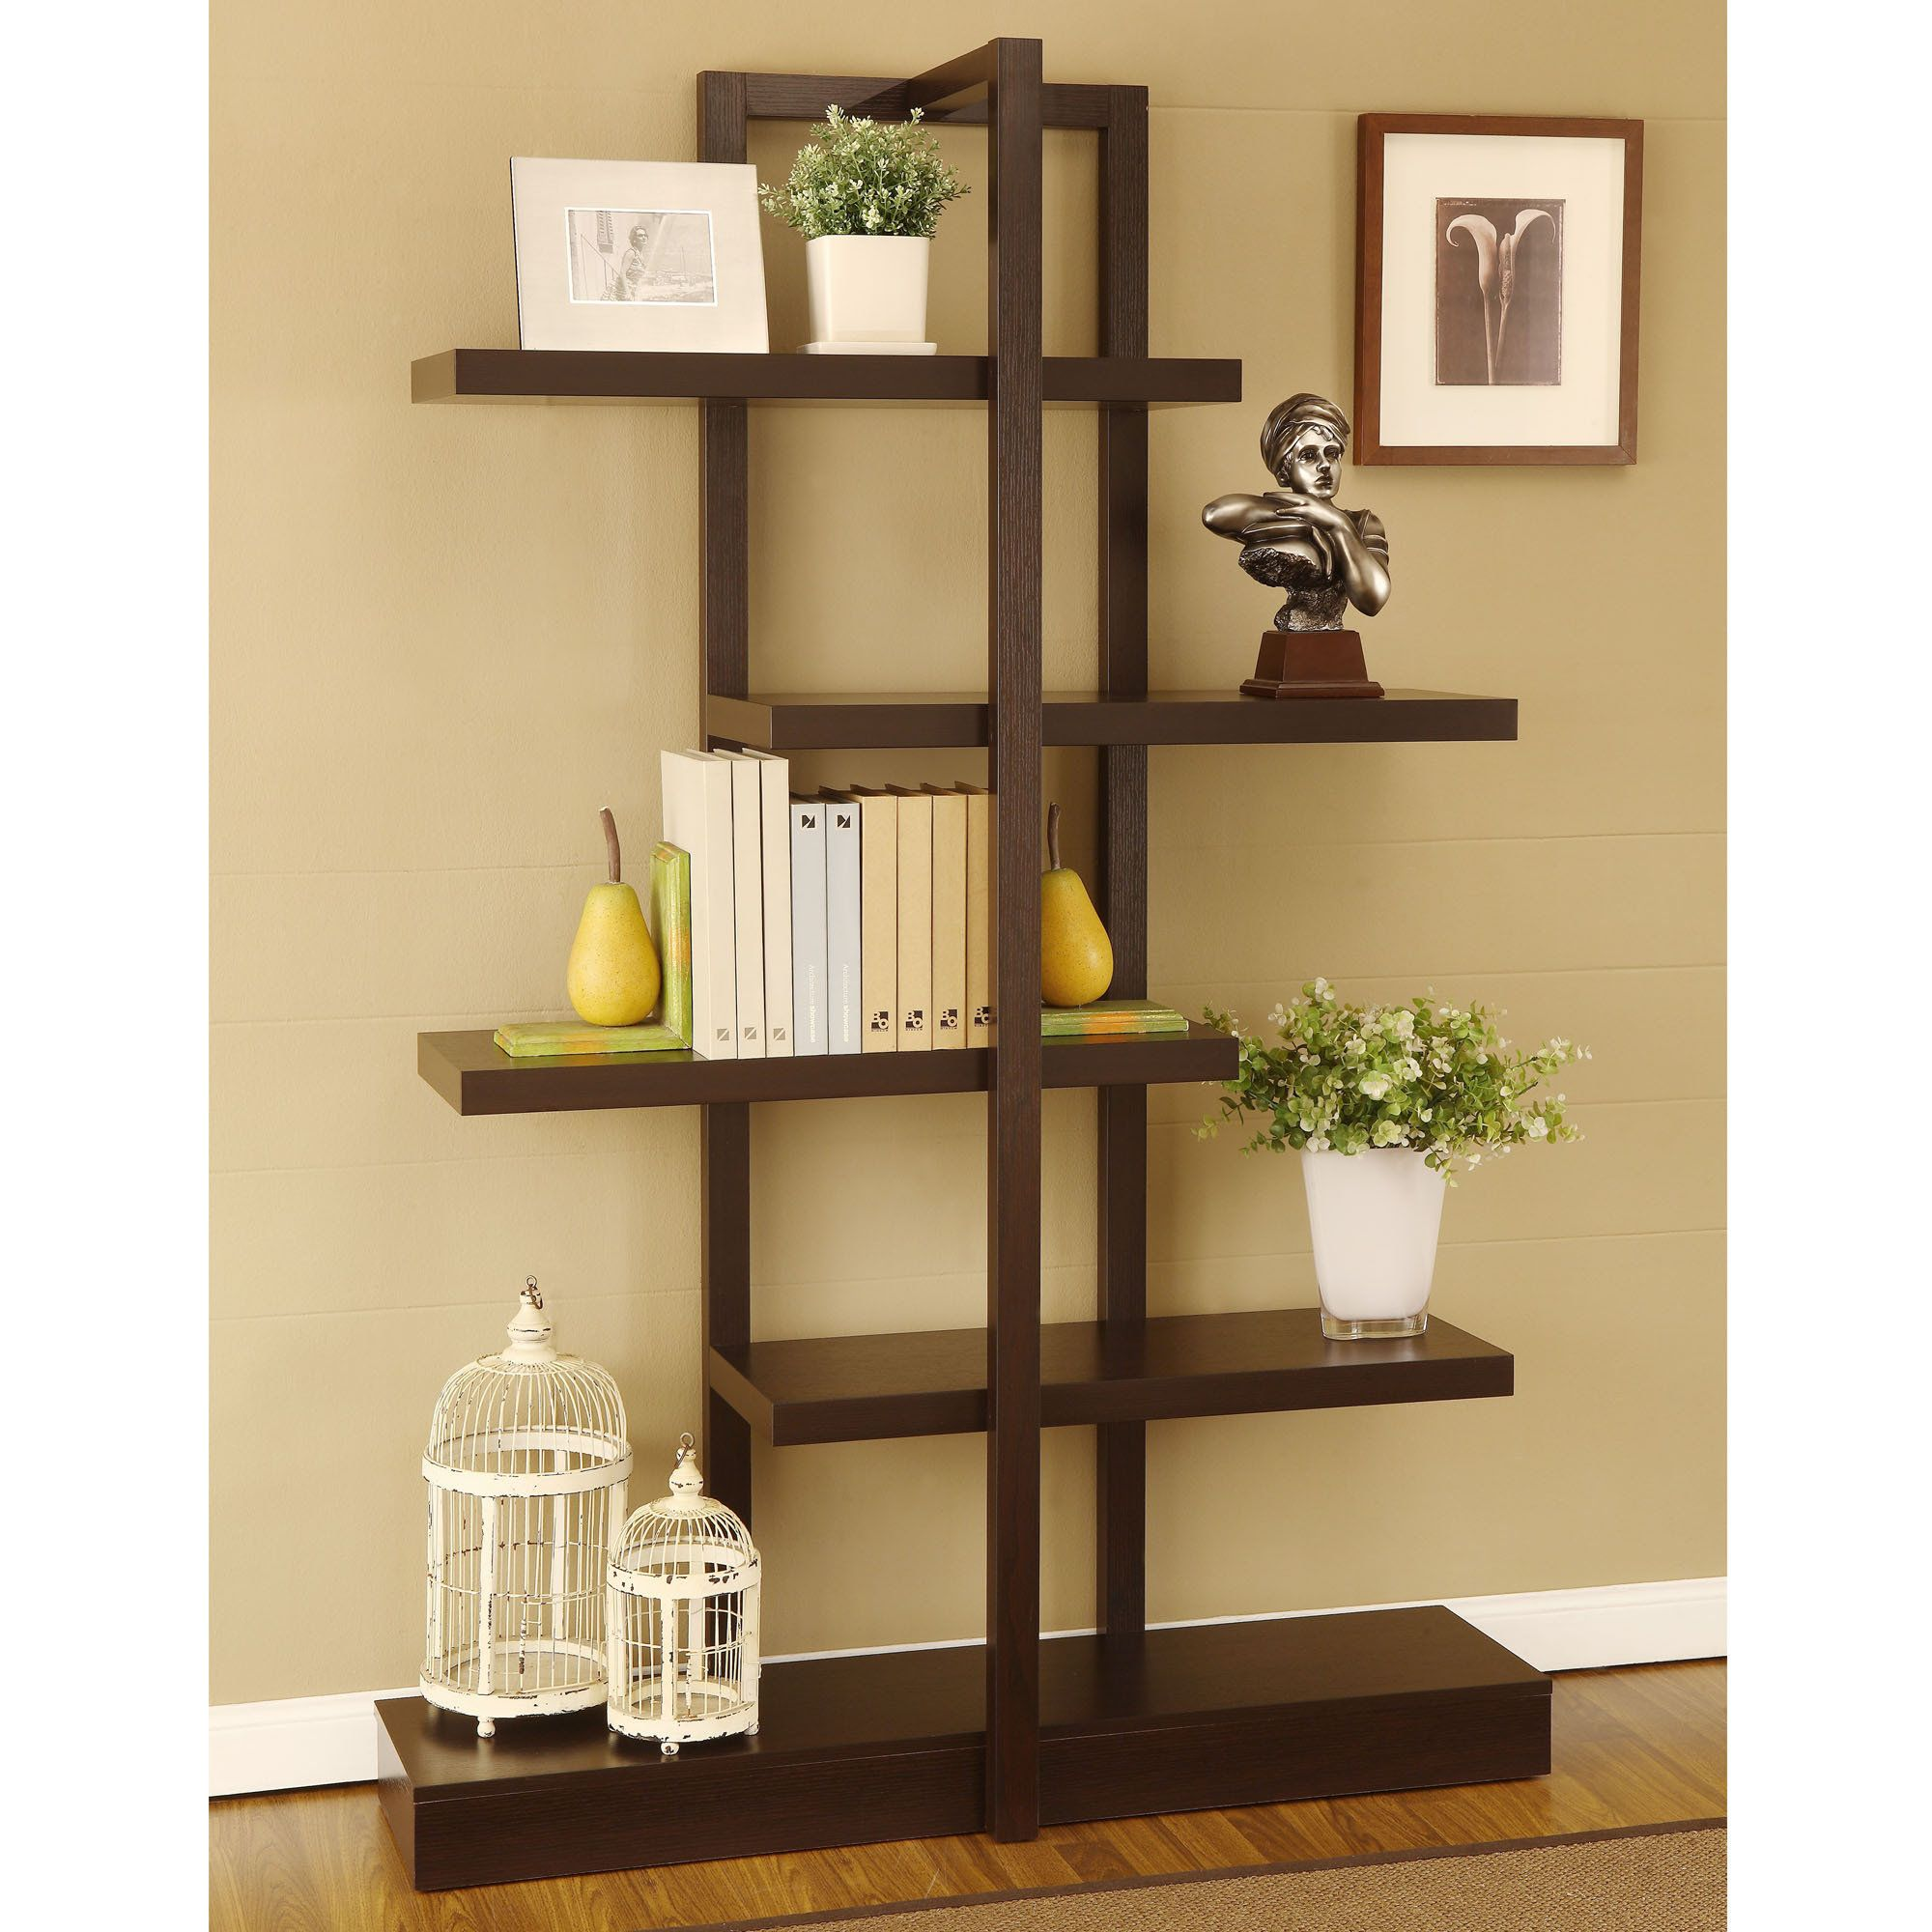 display shelves for collectibles | Home Treyton Shelving Display ...